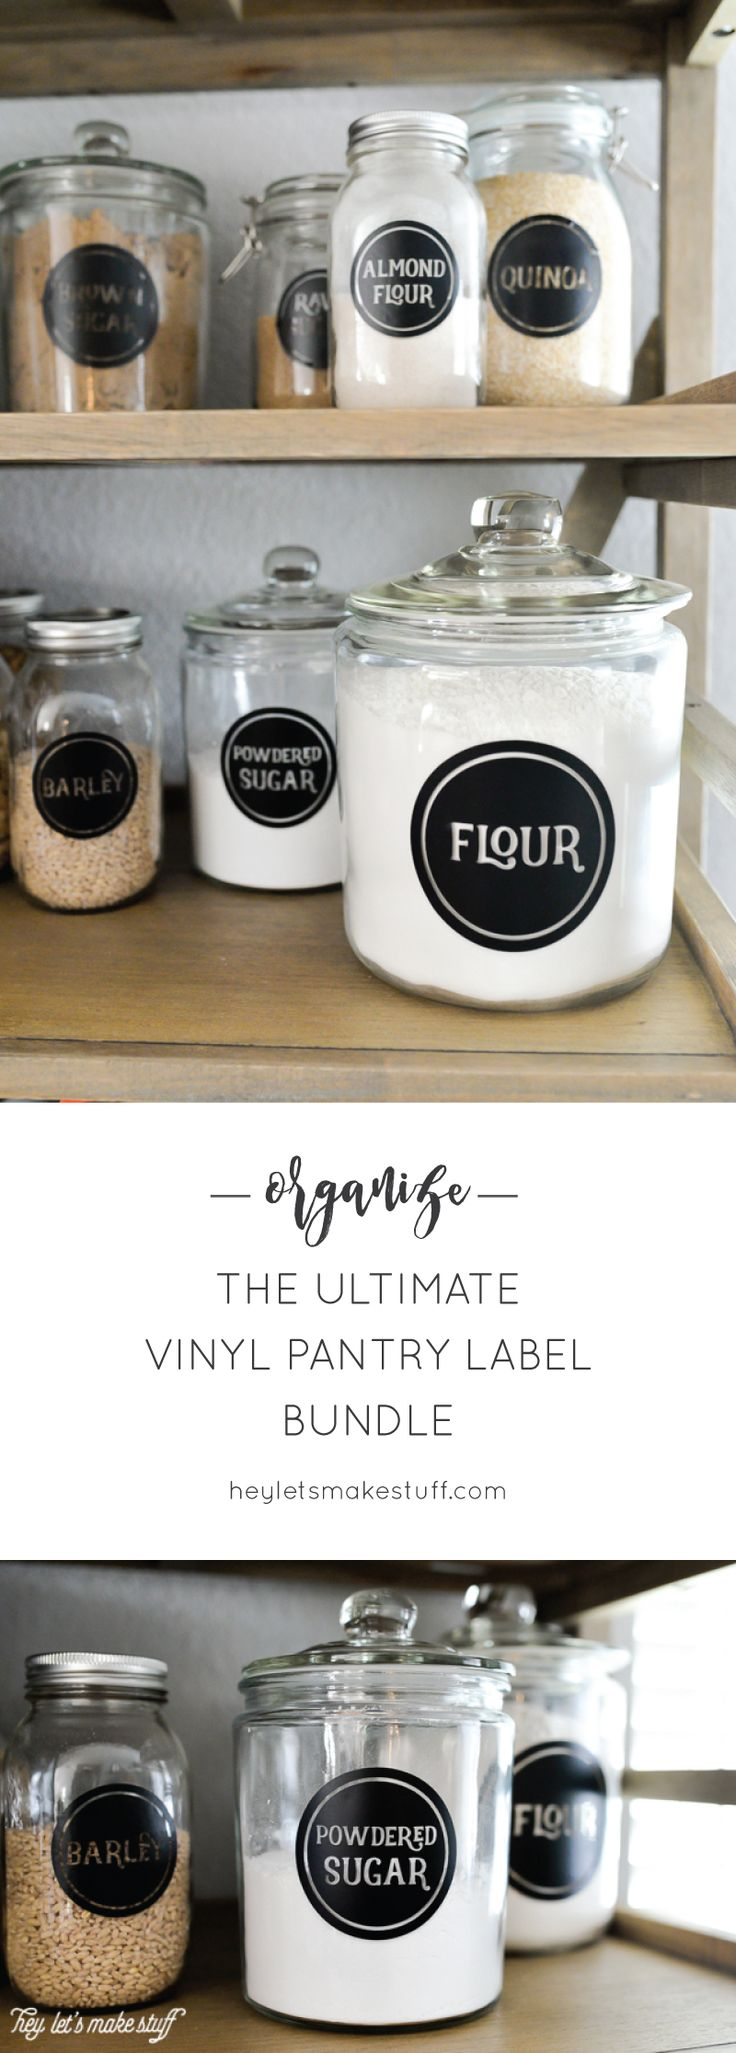 30 Best Spice Jar Labels And Templates Images On Pinterest